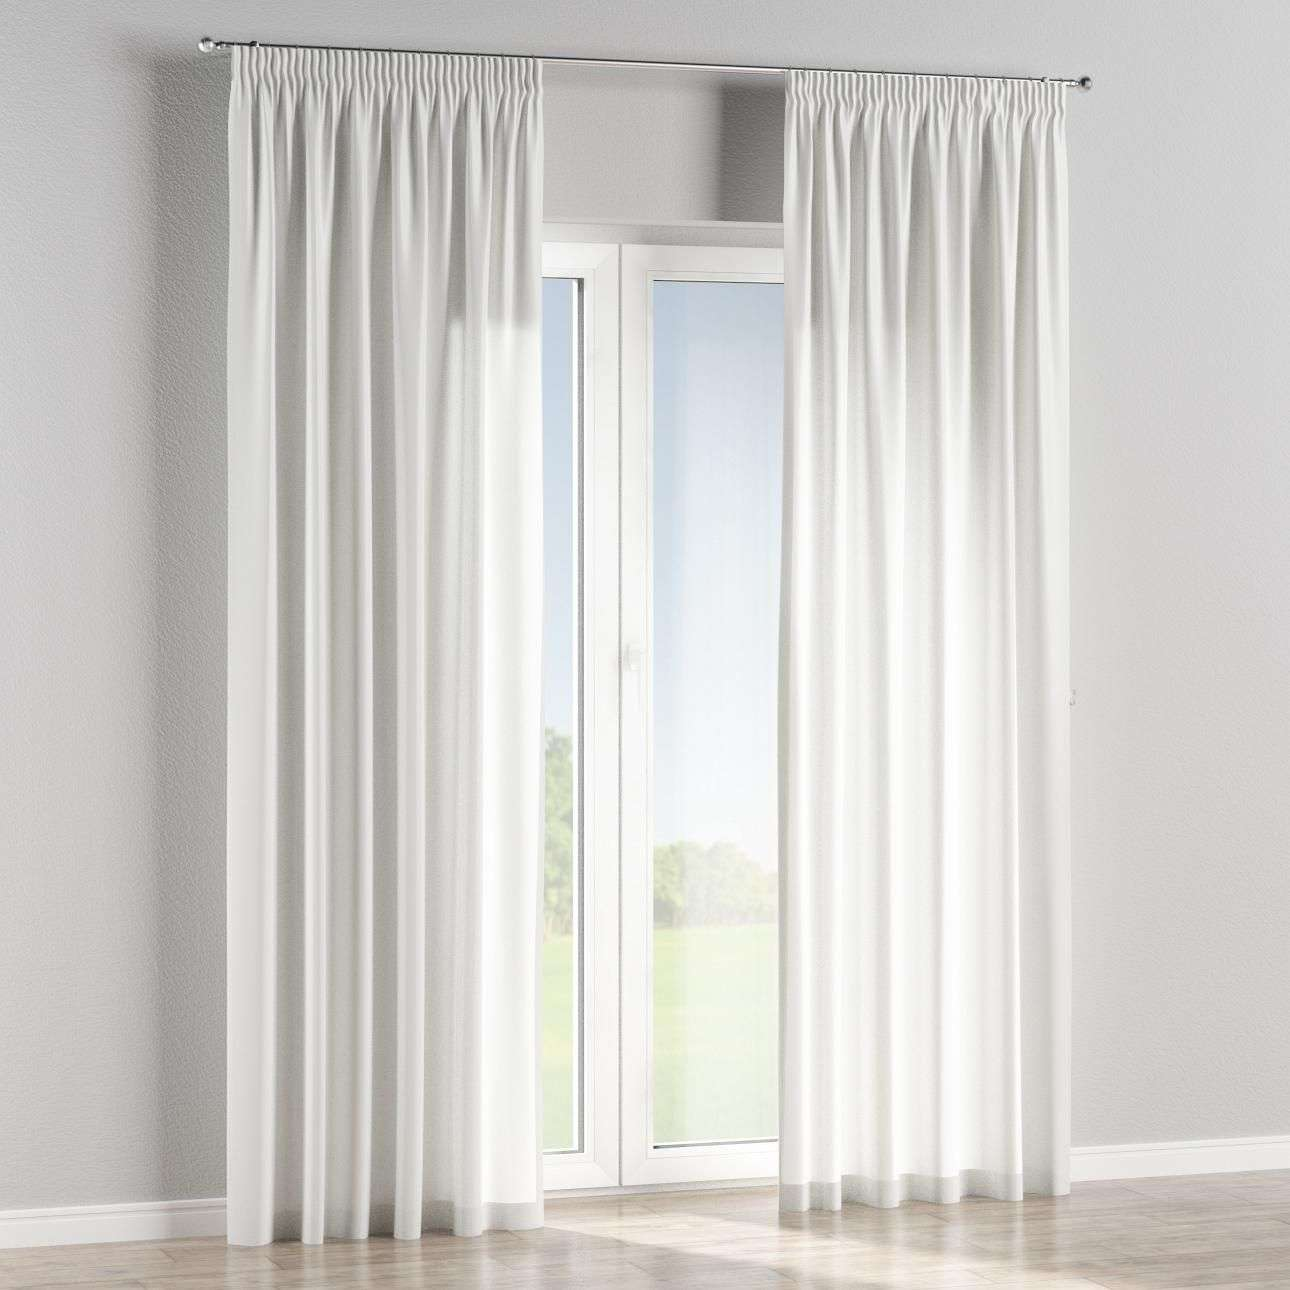 Pencil pleat curtains in collection Milano, fabric: 150-34